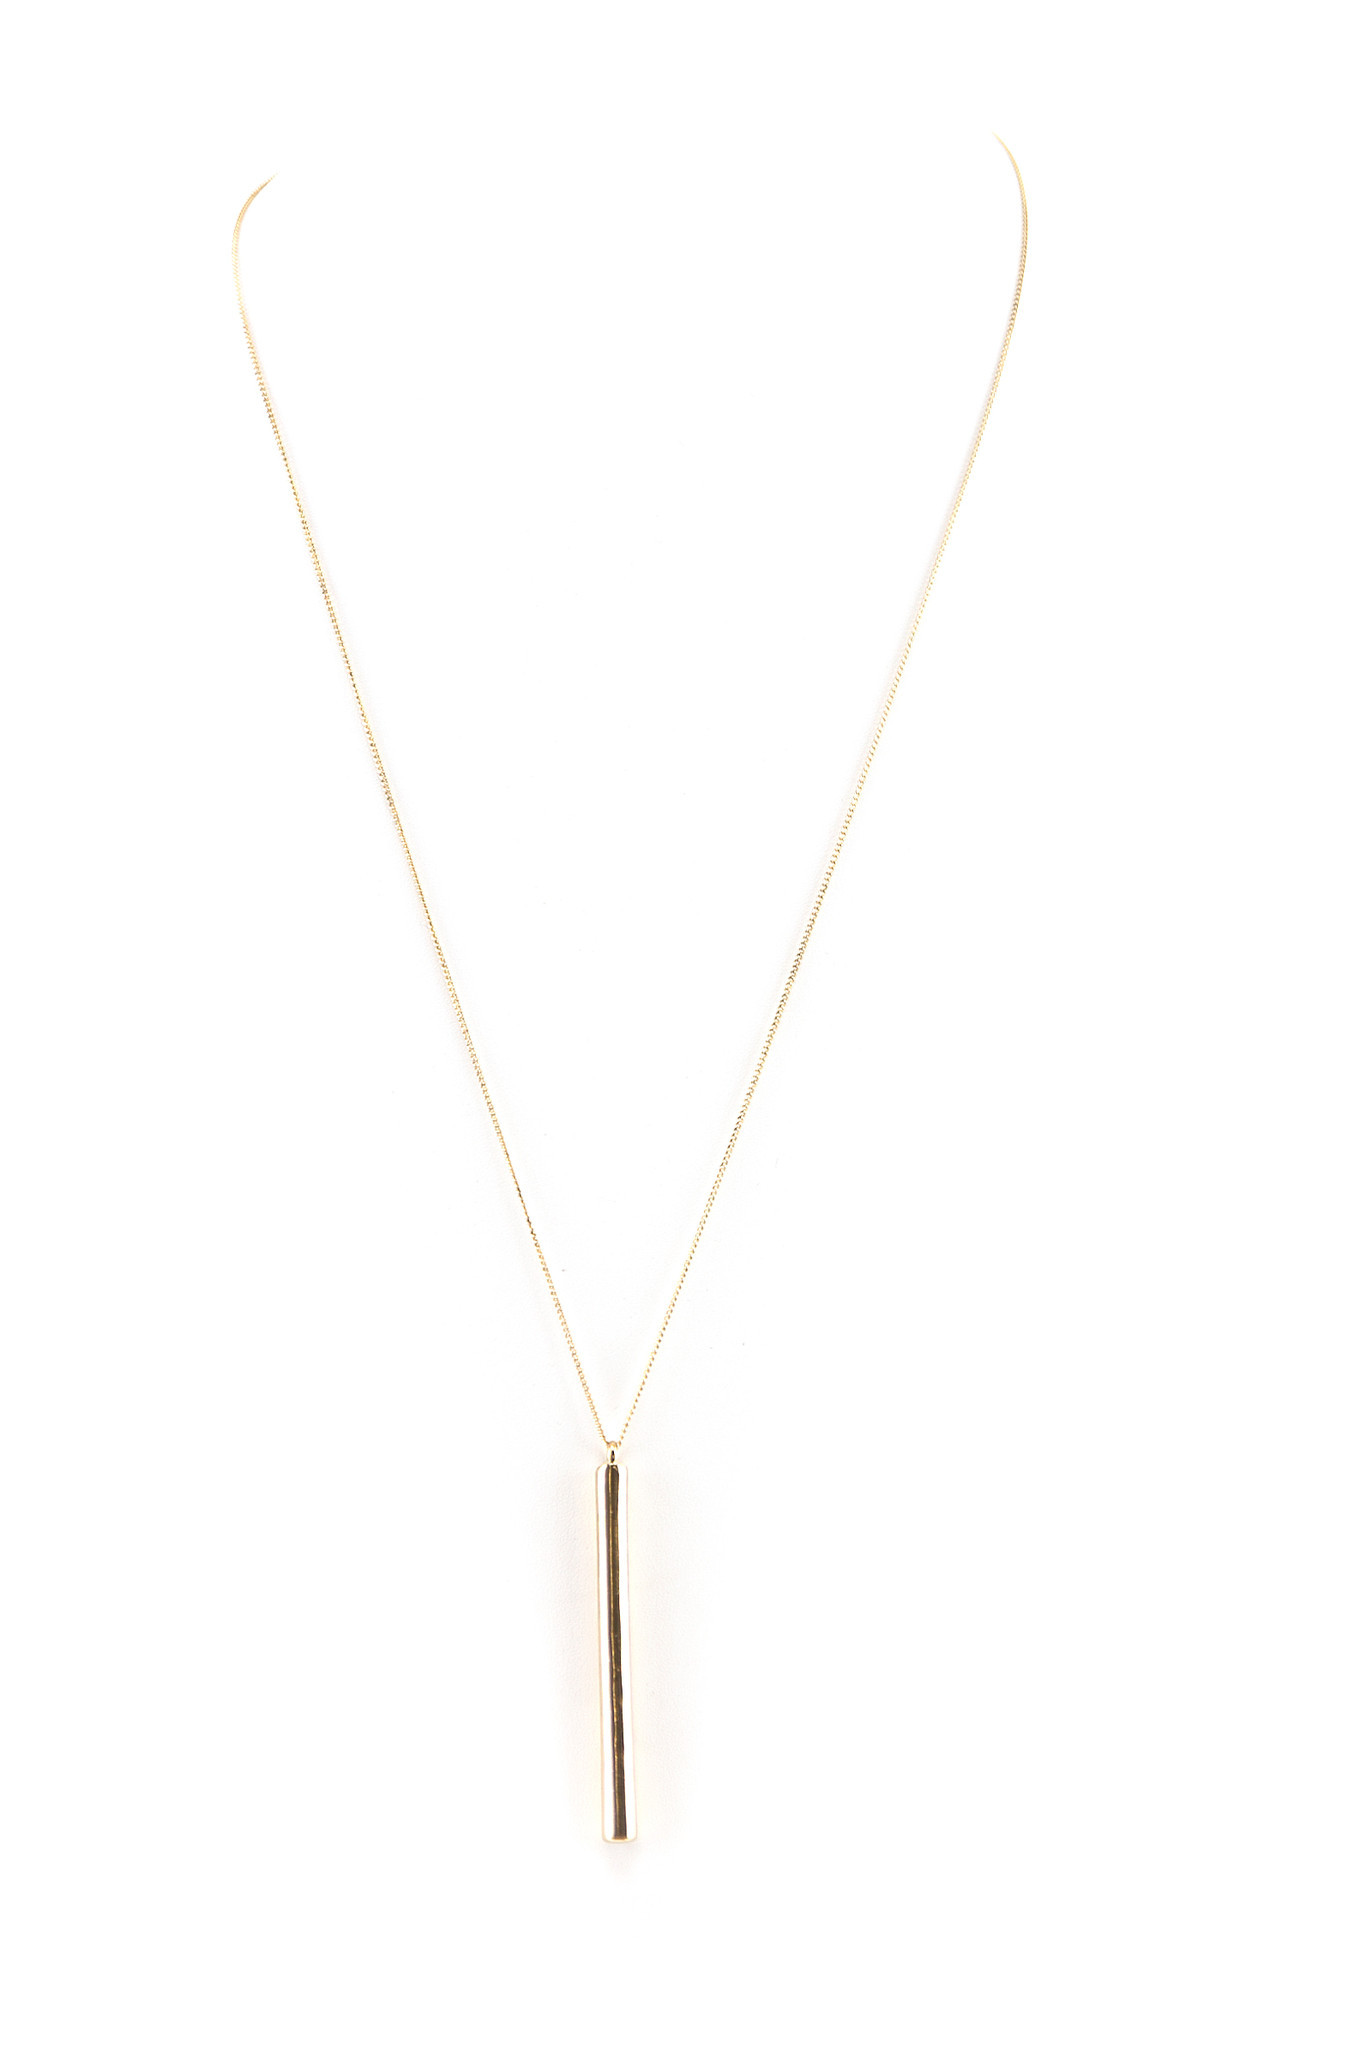 PETITE PIPE CHIME PENDANT NECKLACE | Haute & Rebellious